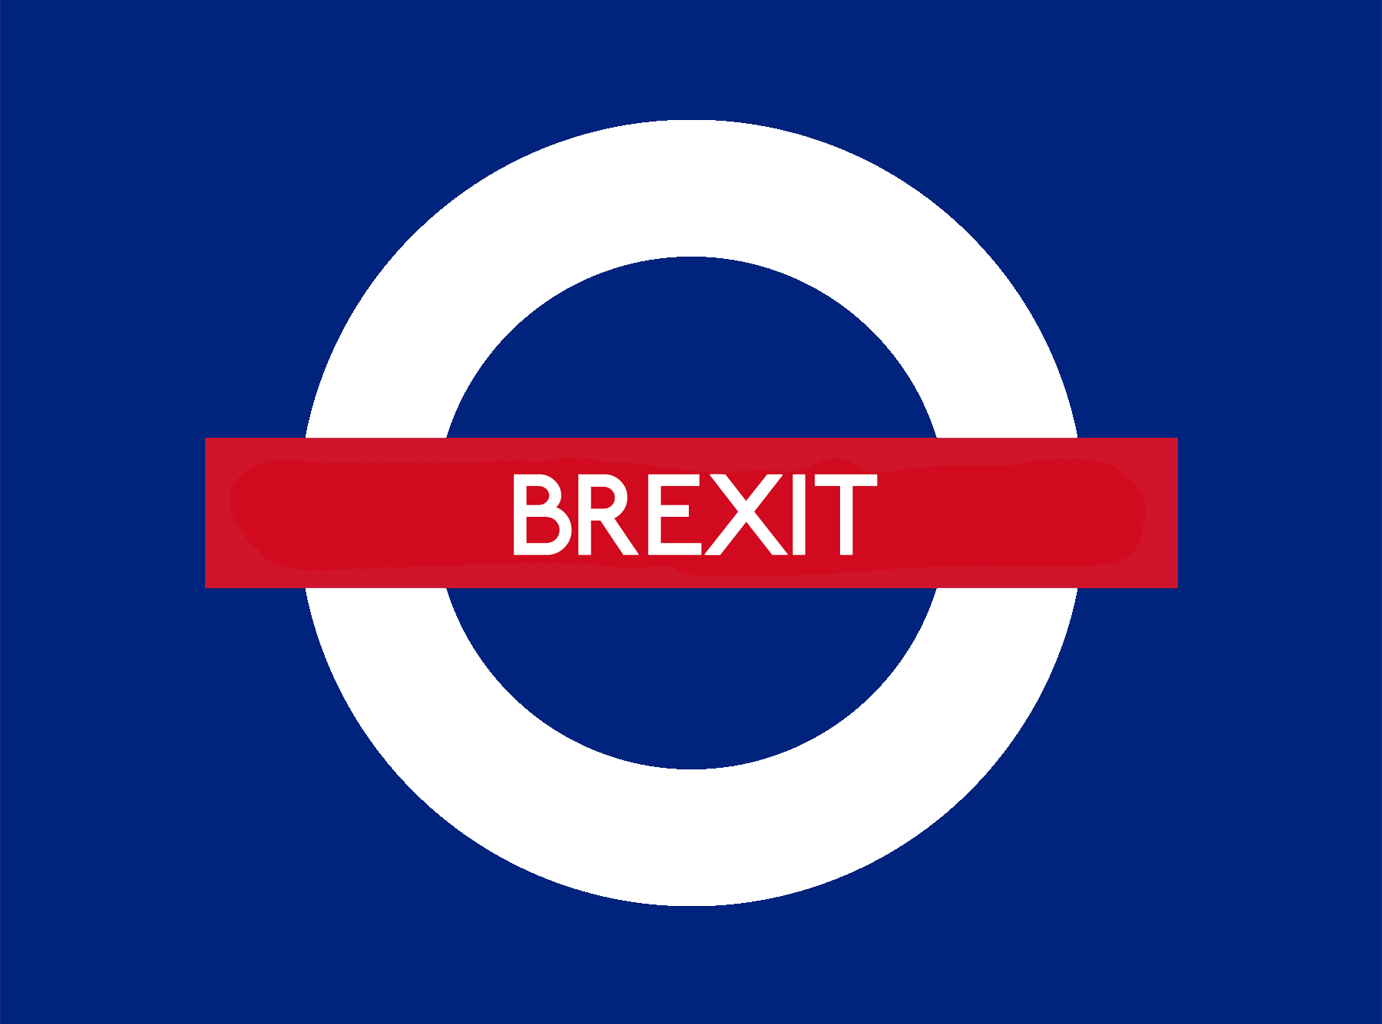 brexit-underground-rectangle